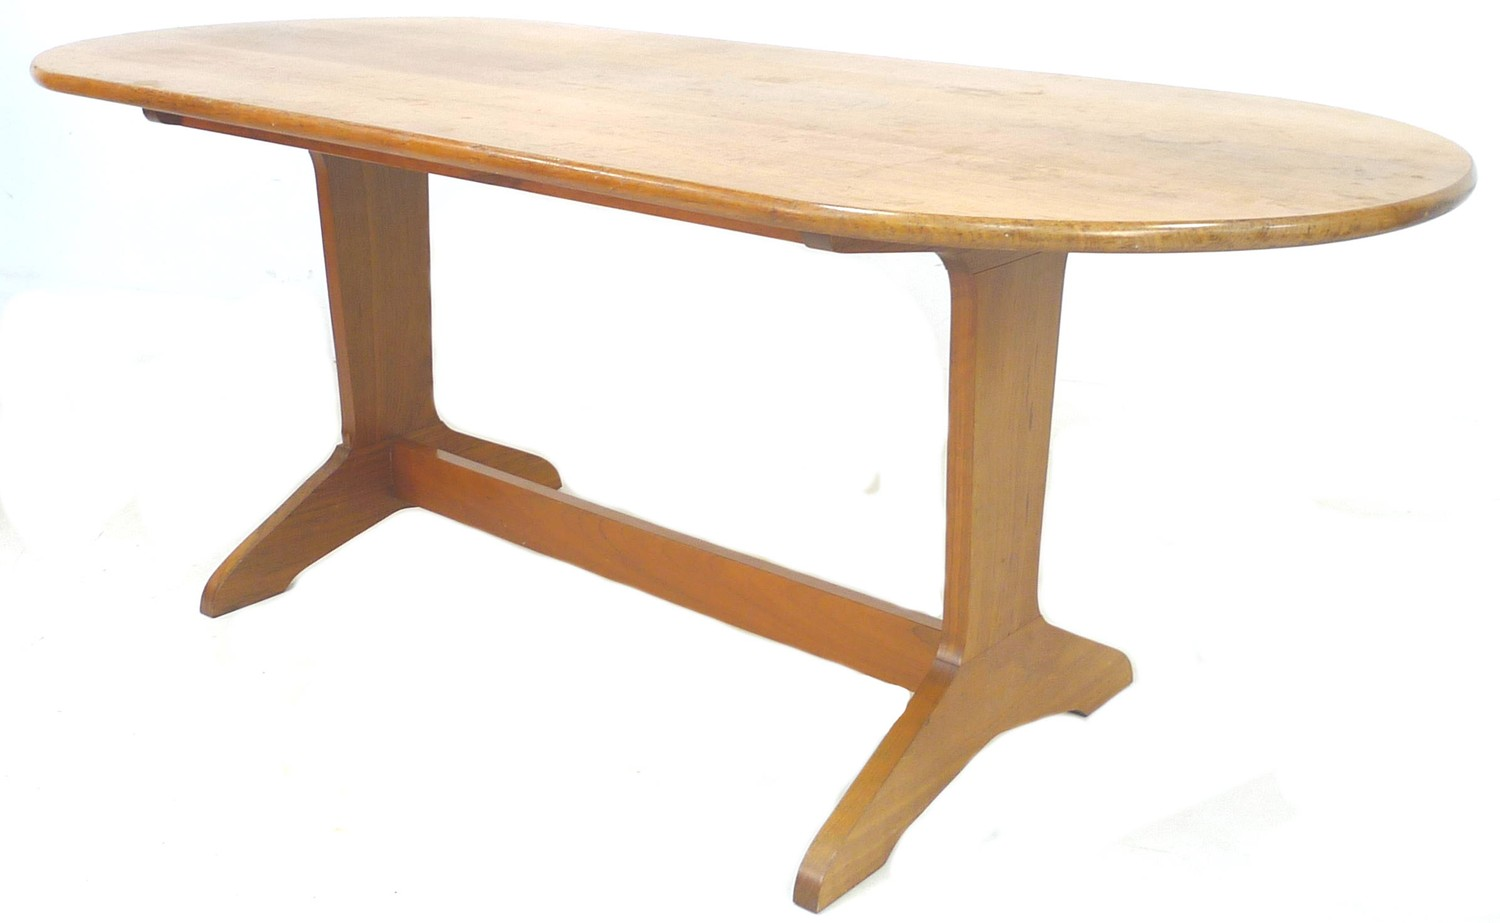 A modern Reynolds of Ludlow oval mahogany dining table, 182 by 83 by 73cm high, together with a - Image 4 of 4